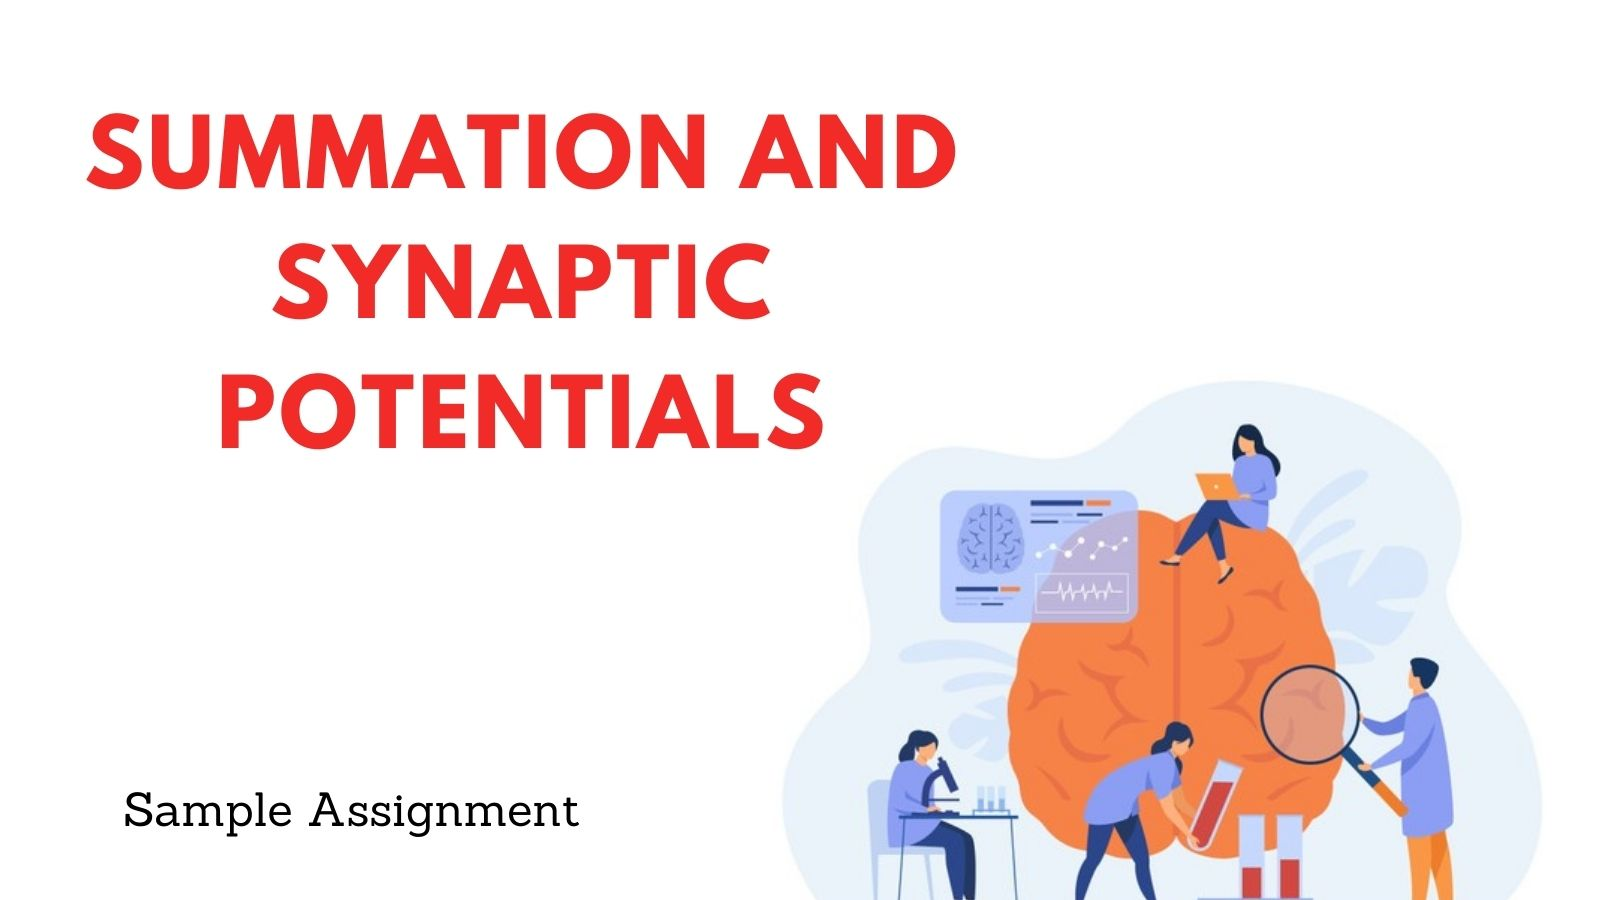 Summation And Synaptic Potentials